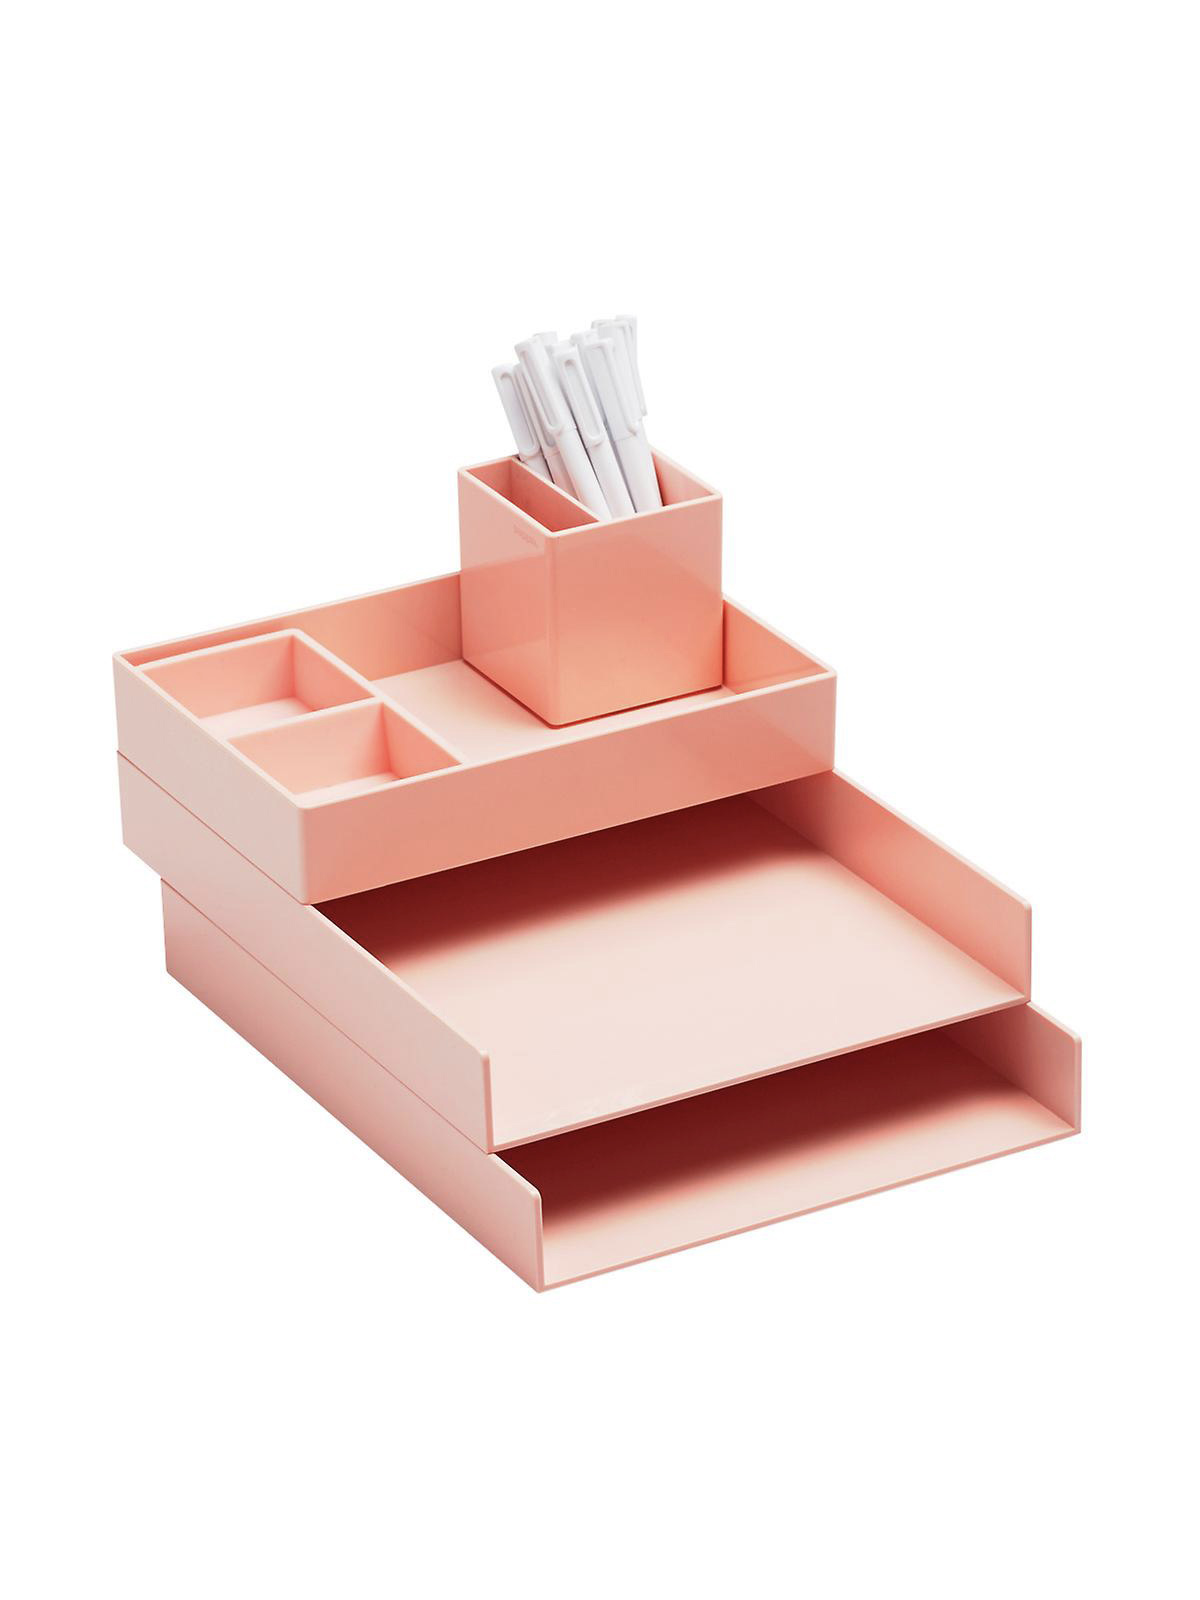 Poppin desk organizer in peach